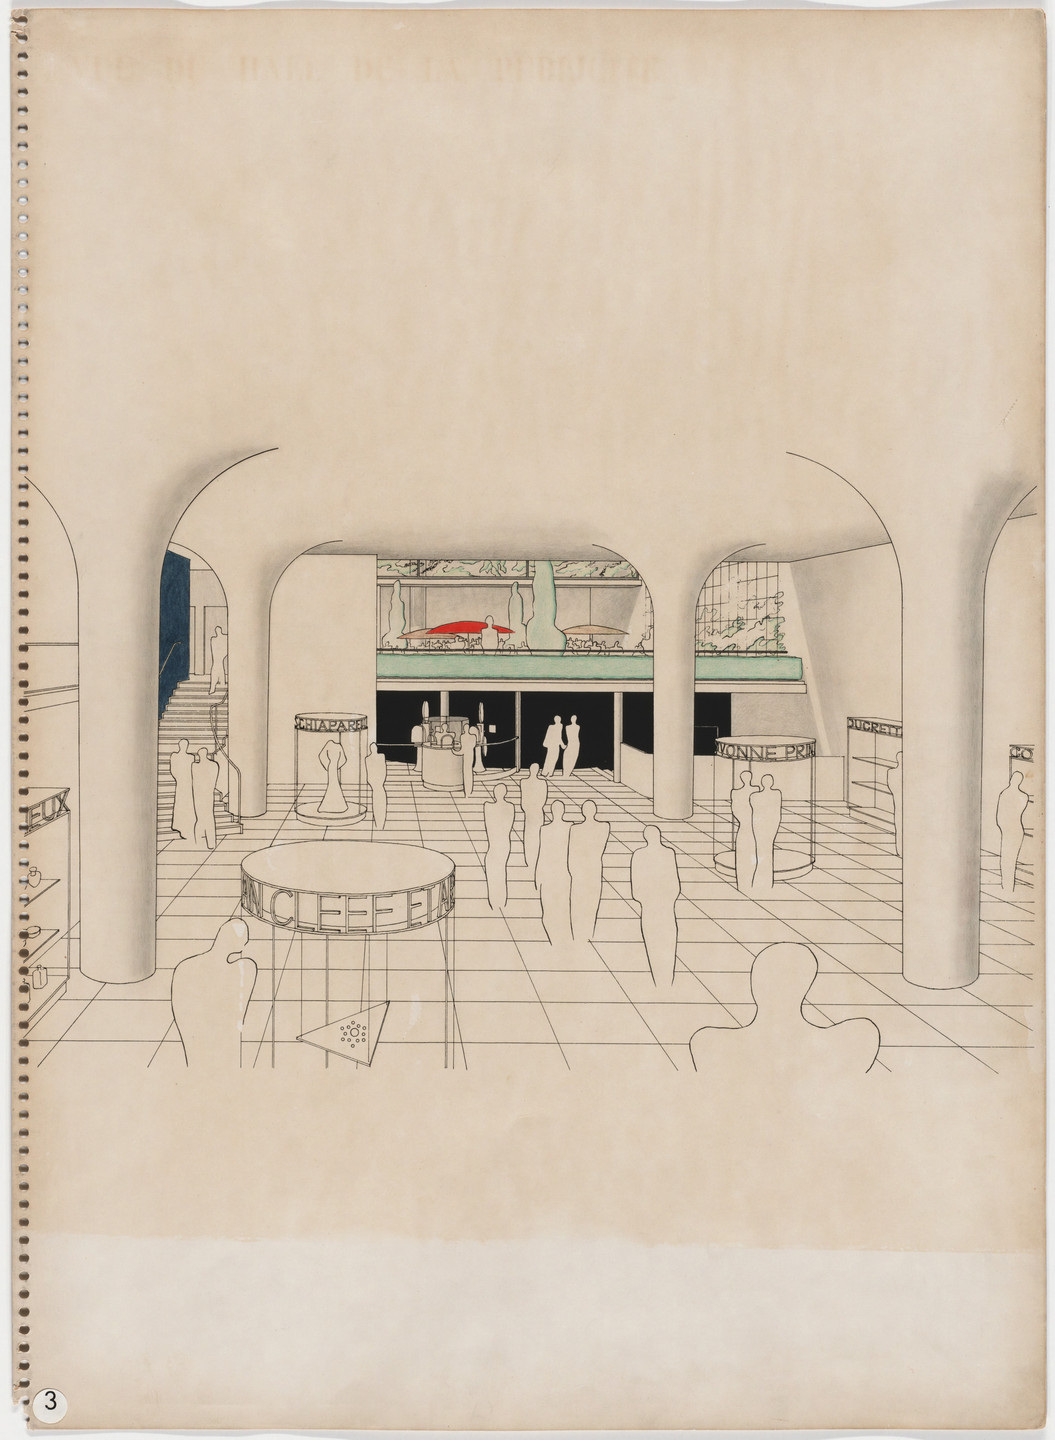 Oscar Nitzchke. Maison de la Publicité Project, Paris, France (Perspective of entry and exhibition space). 1936